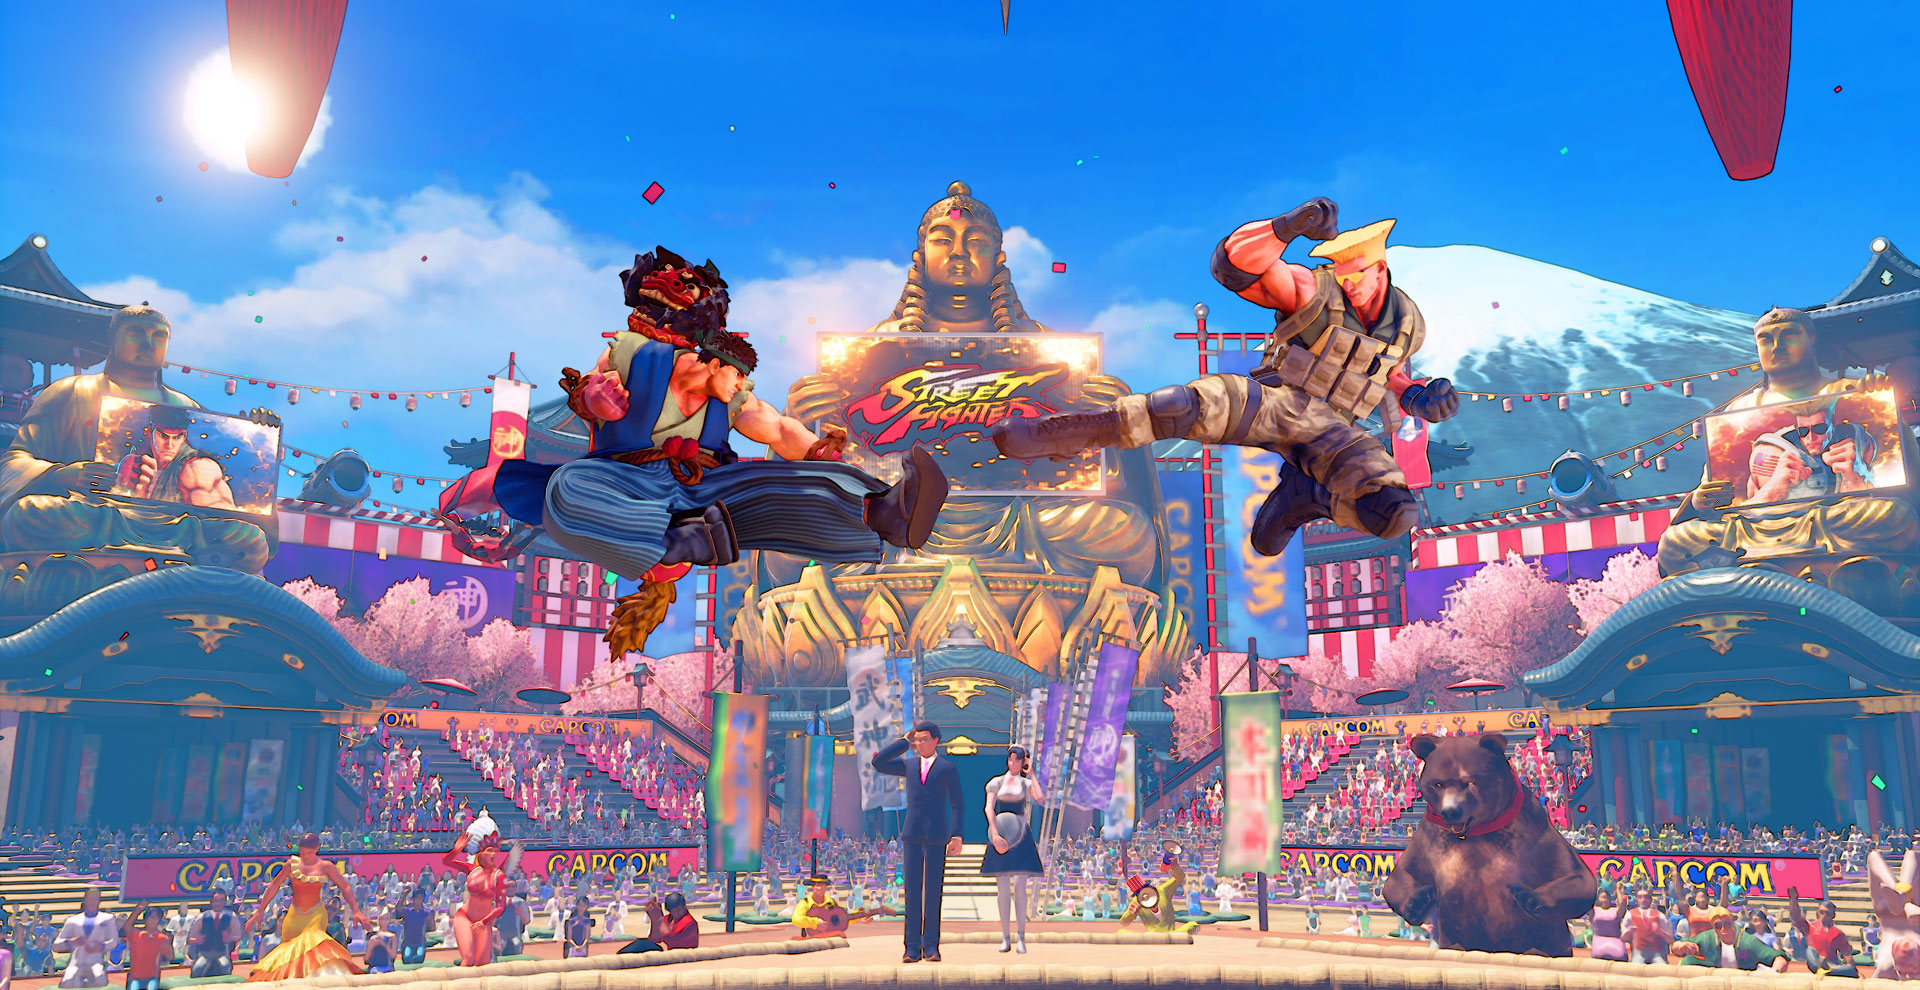 New stages and costumes are coming to Street Fighter 5 later this month